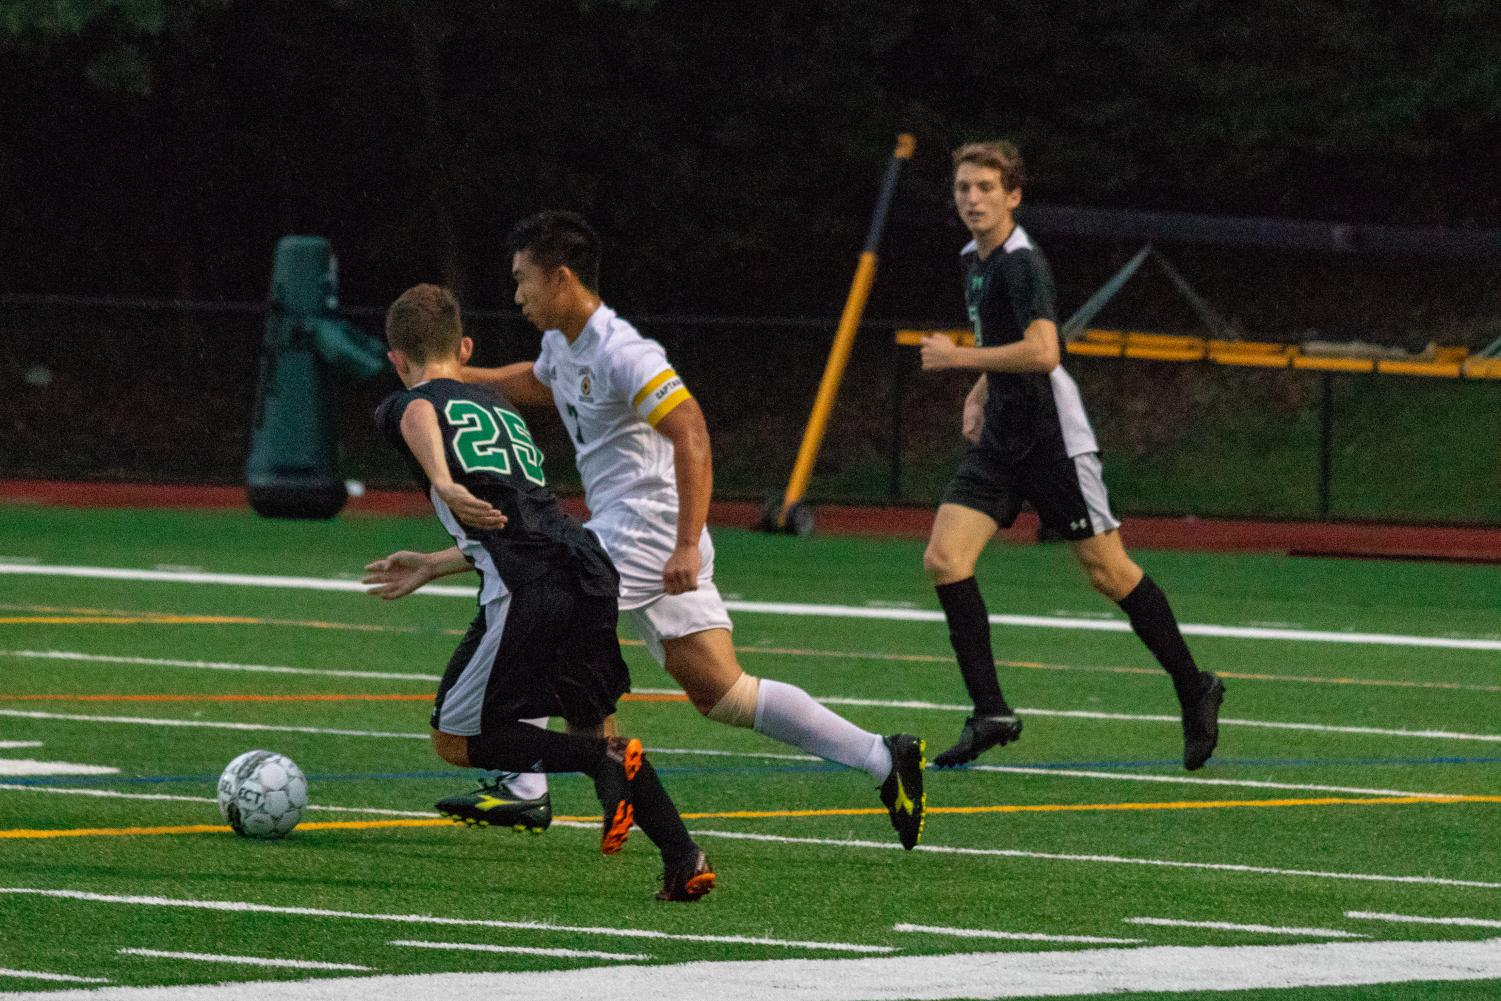 Luke Palamidis and Brayden Schwartz on the field for PV during a game from this season. They both will return next season to play under coach Roy Nygren.